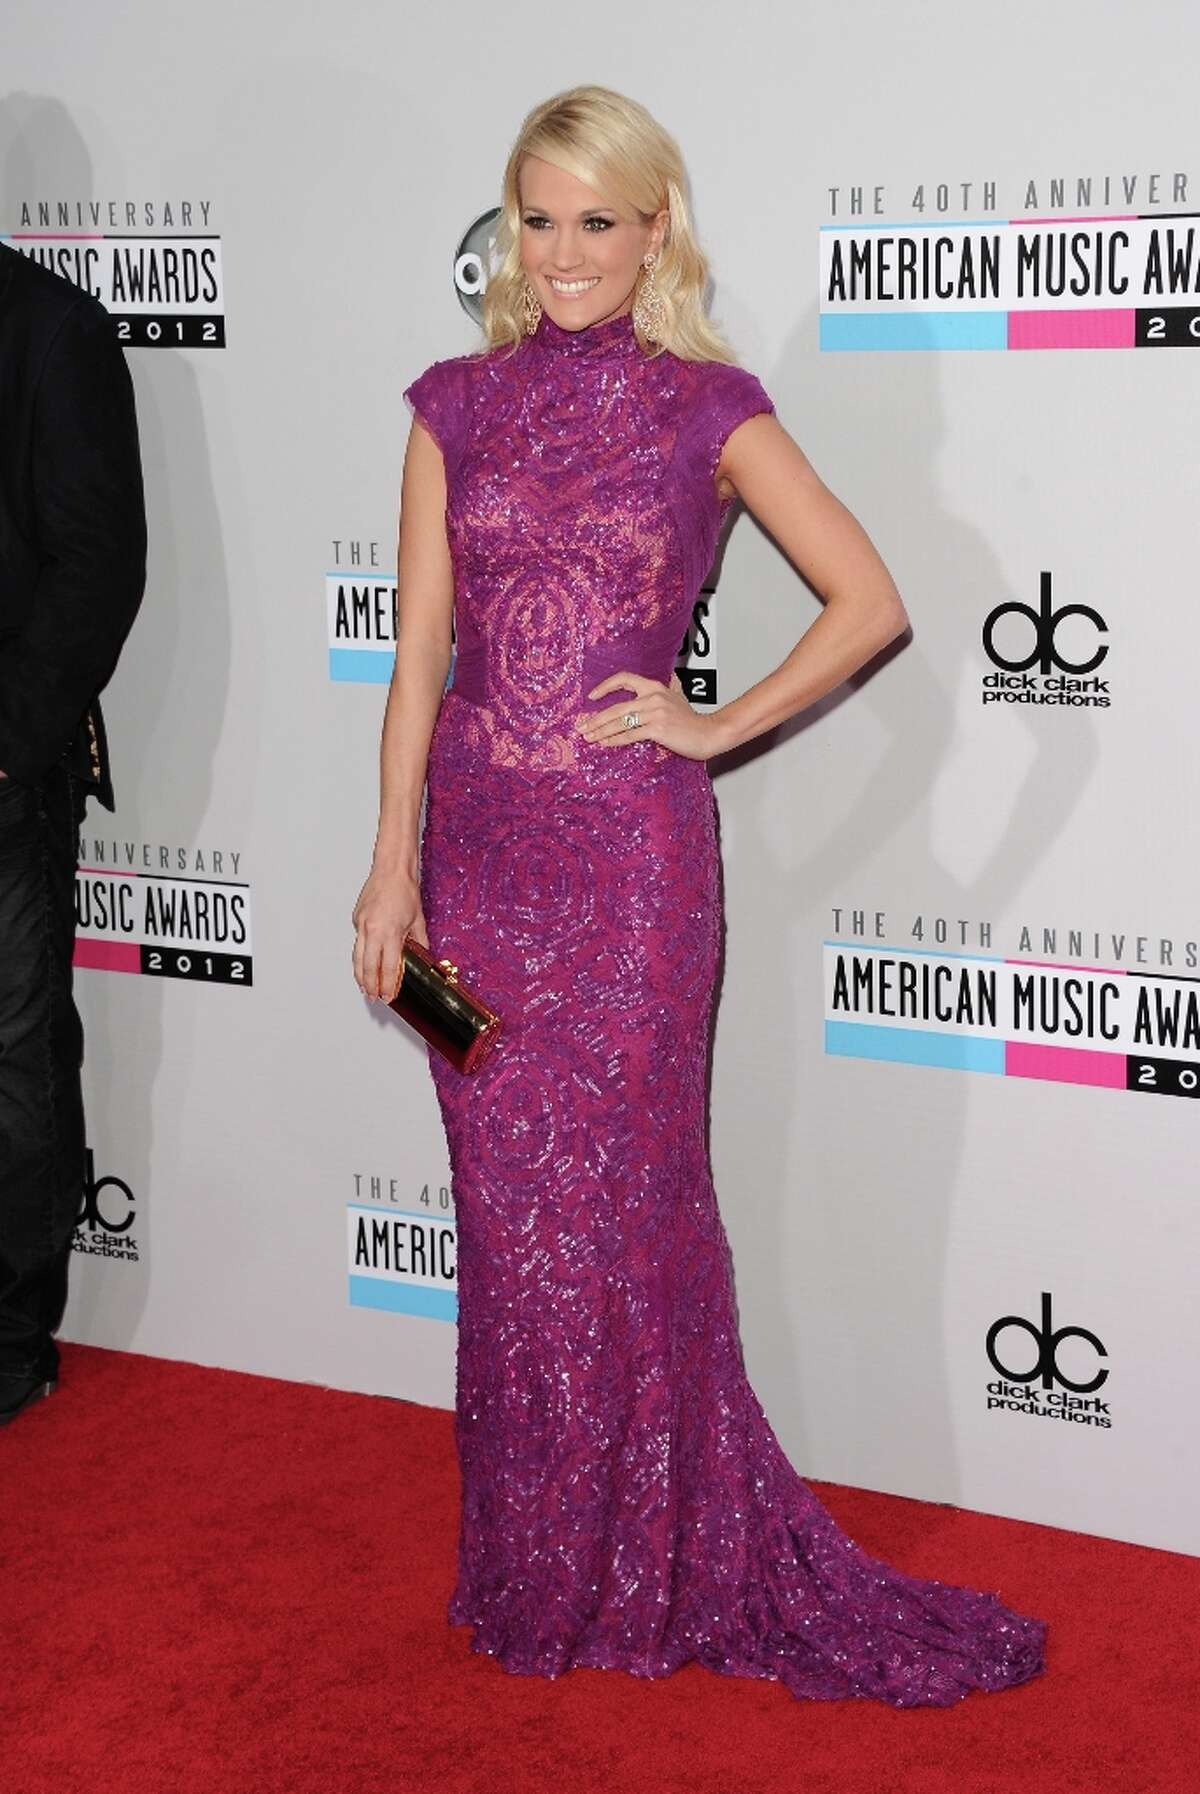 Singer Carrie Underwood attends the 40th American Music Awards held at Nokia Theatre L.A. Live on November 18, 2012 in Los Angeles, California. (Photo by Jason Merritt/Getty Images)